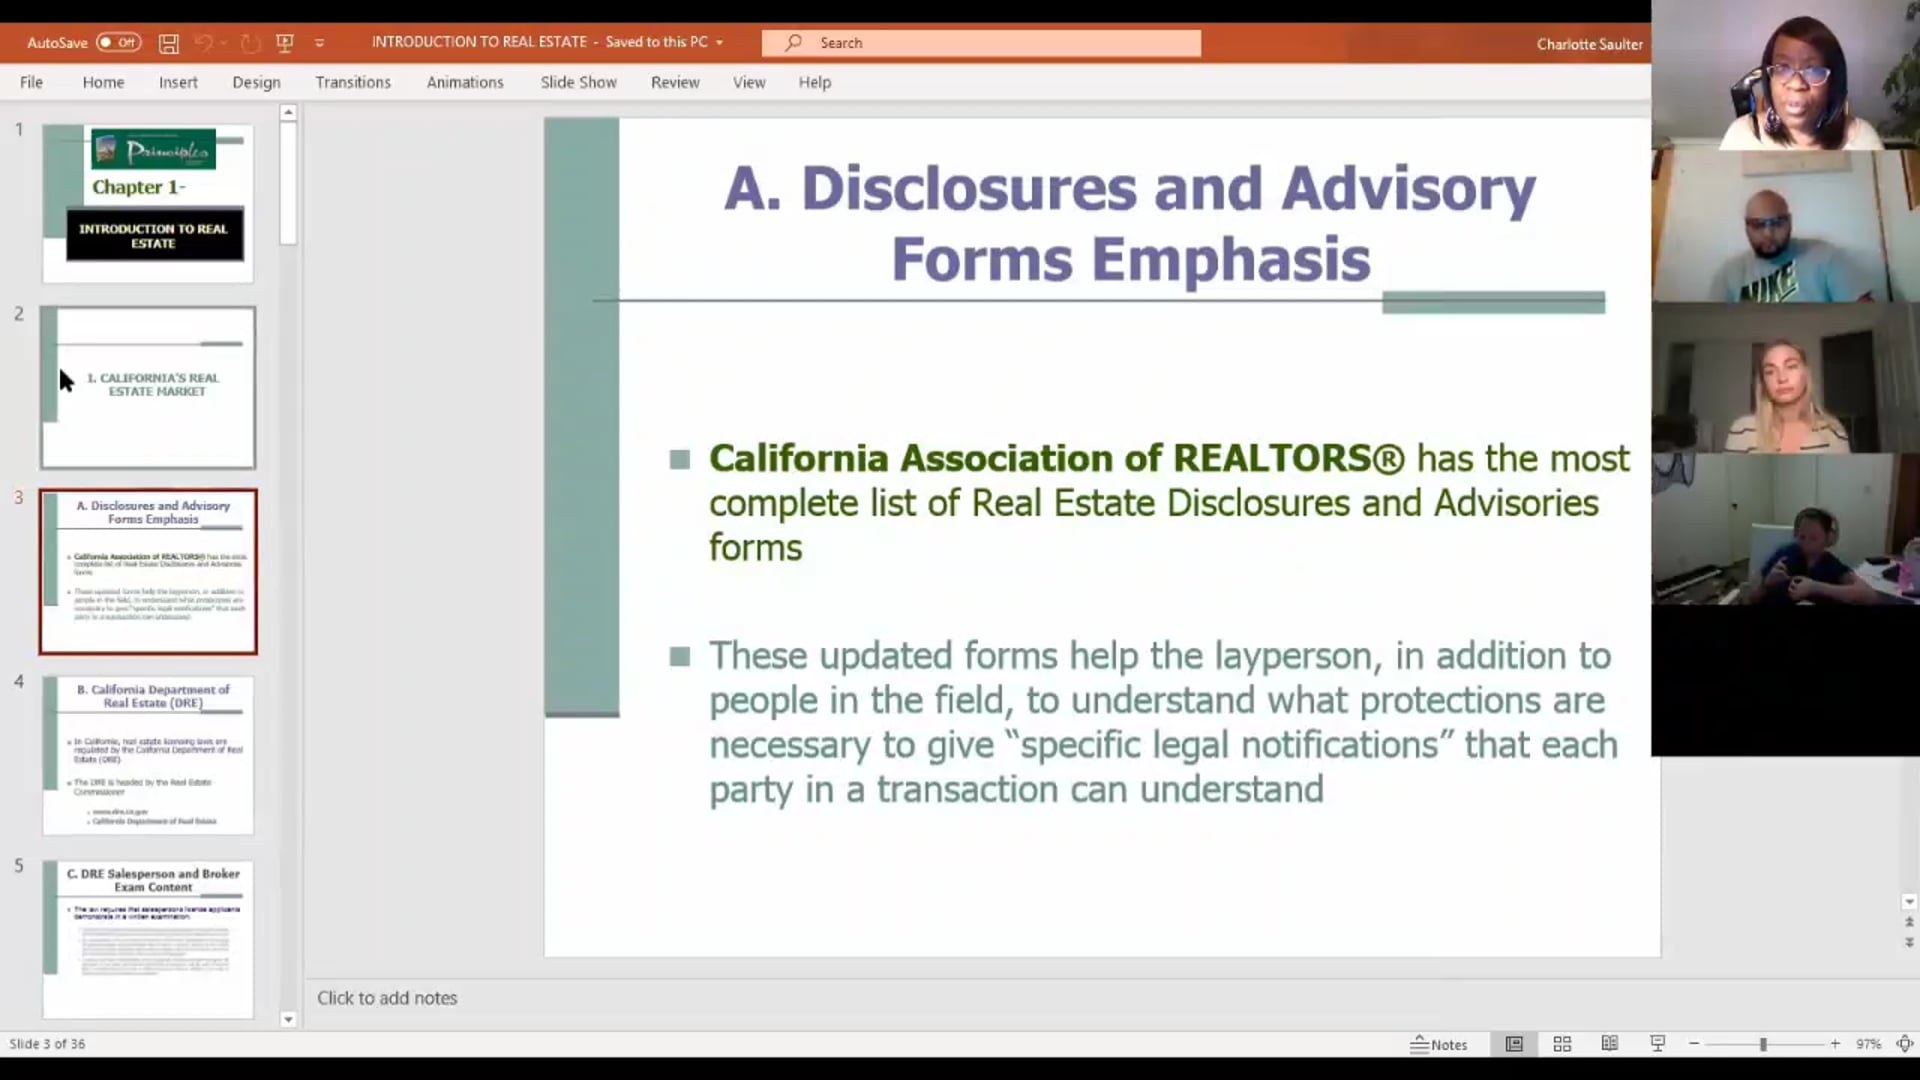 Introduction to Real Estate by Charlotte Saulter